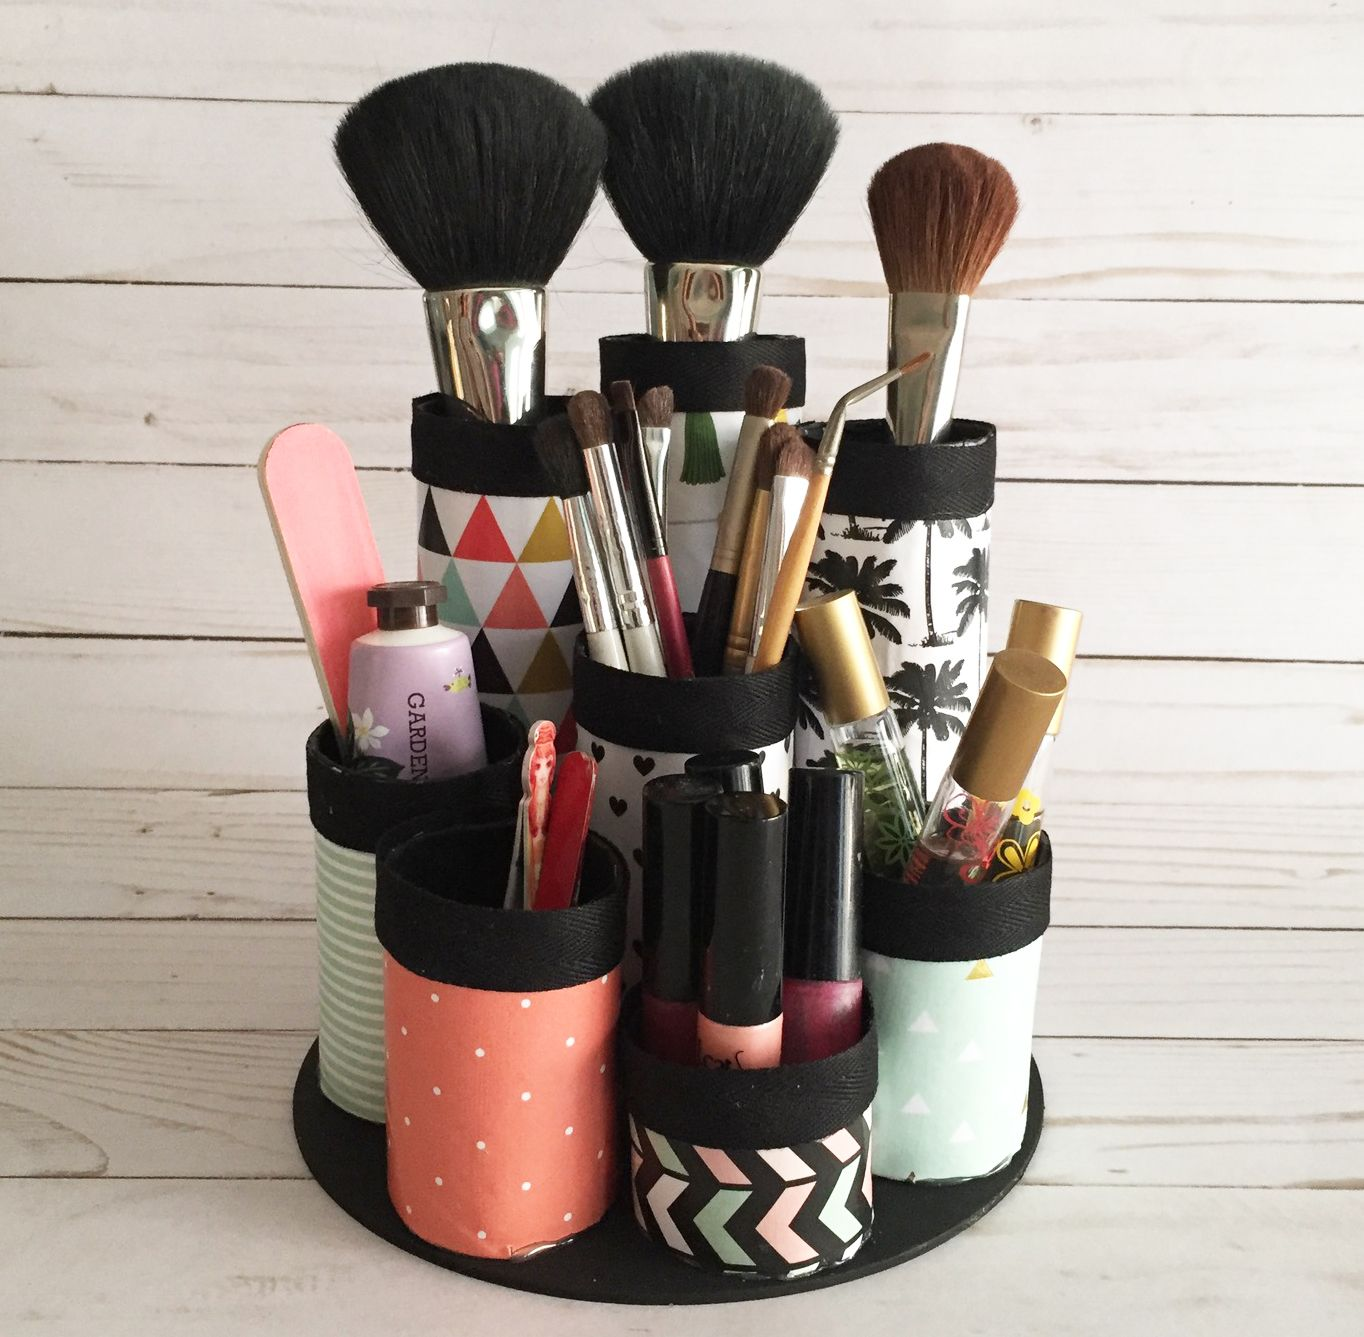 DIY Makeup Organizer. Made from recycled paper towel tubes